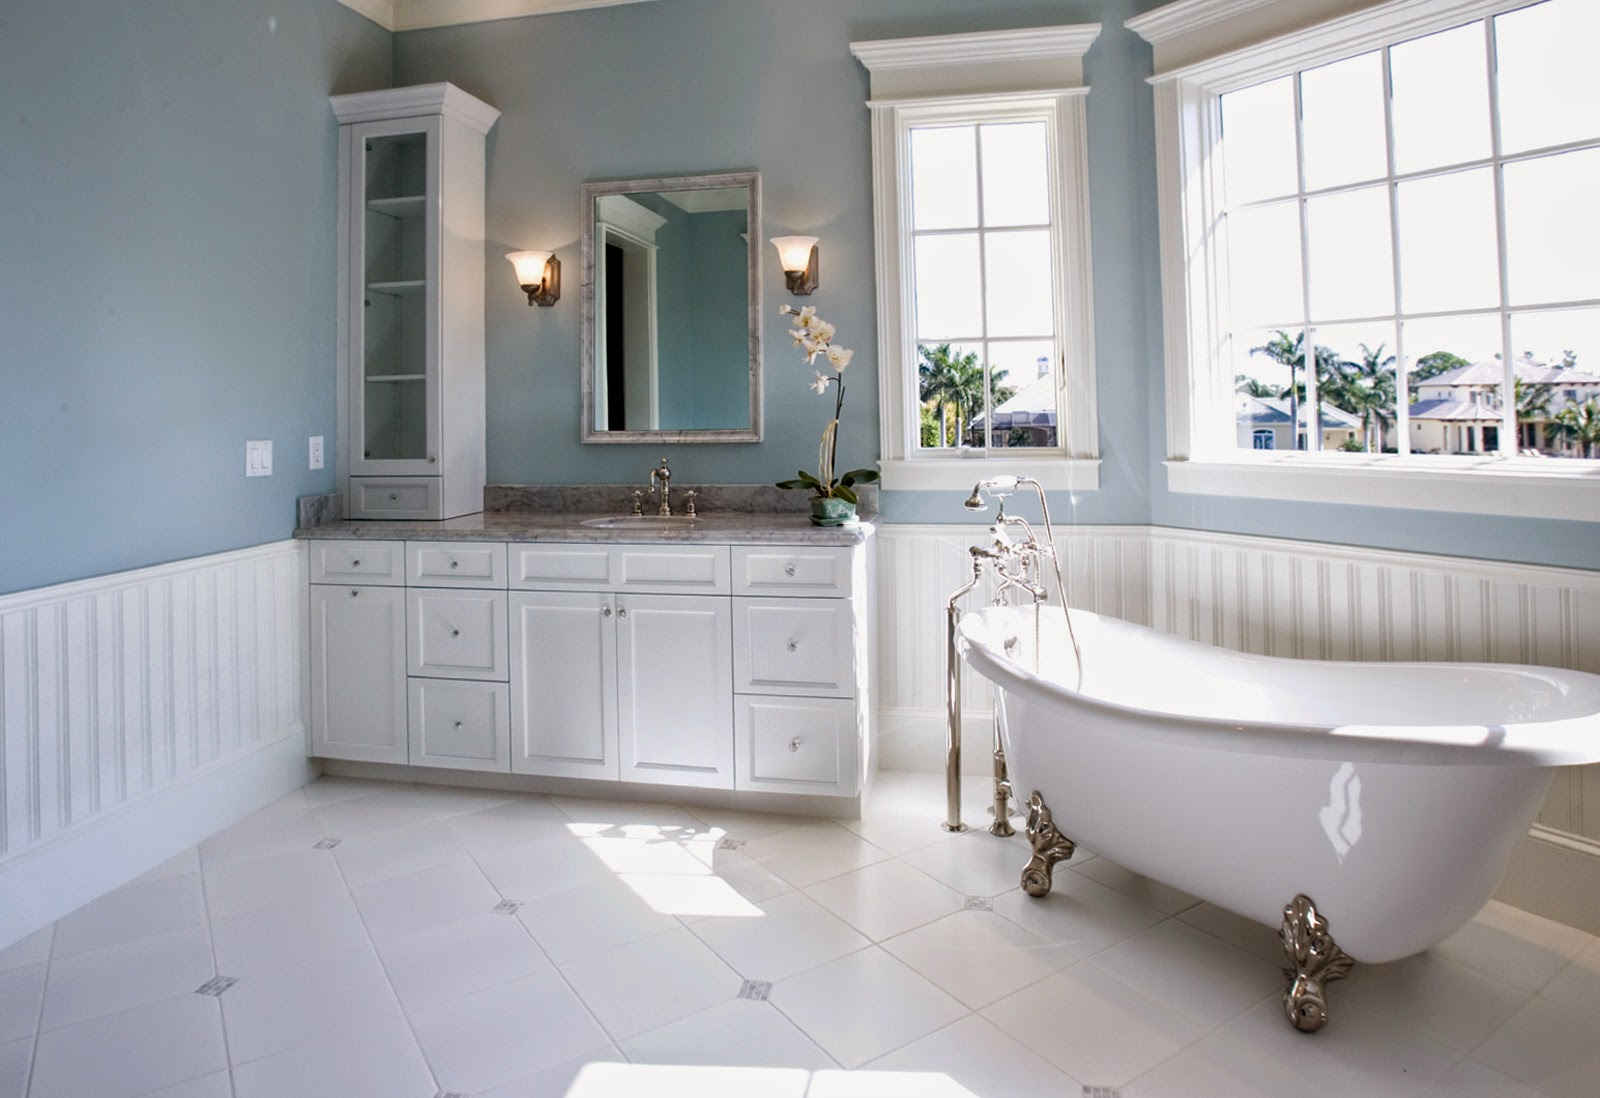 Top 10 beautiful bathroom design 2014 home interior blog magazine - Bathroom design ...